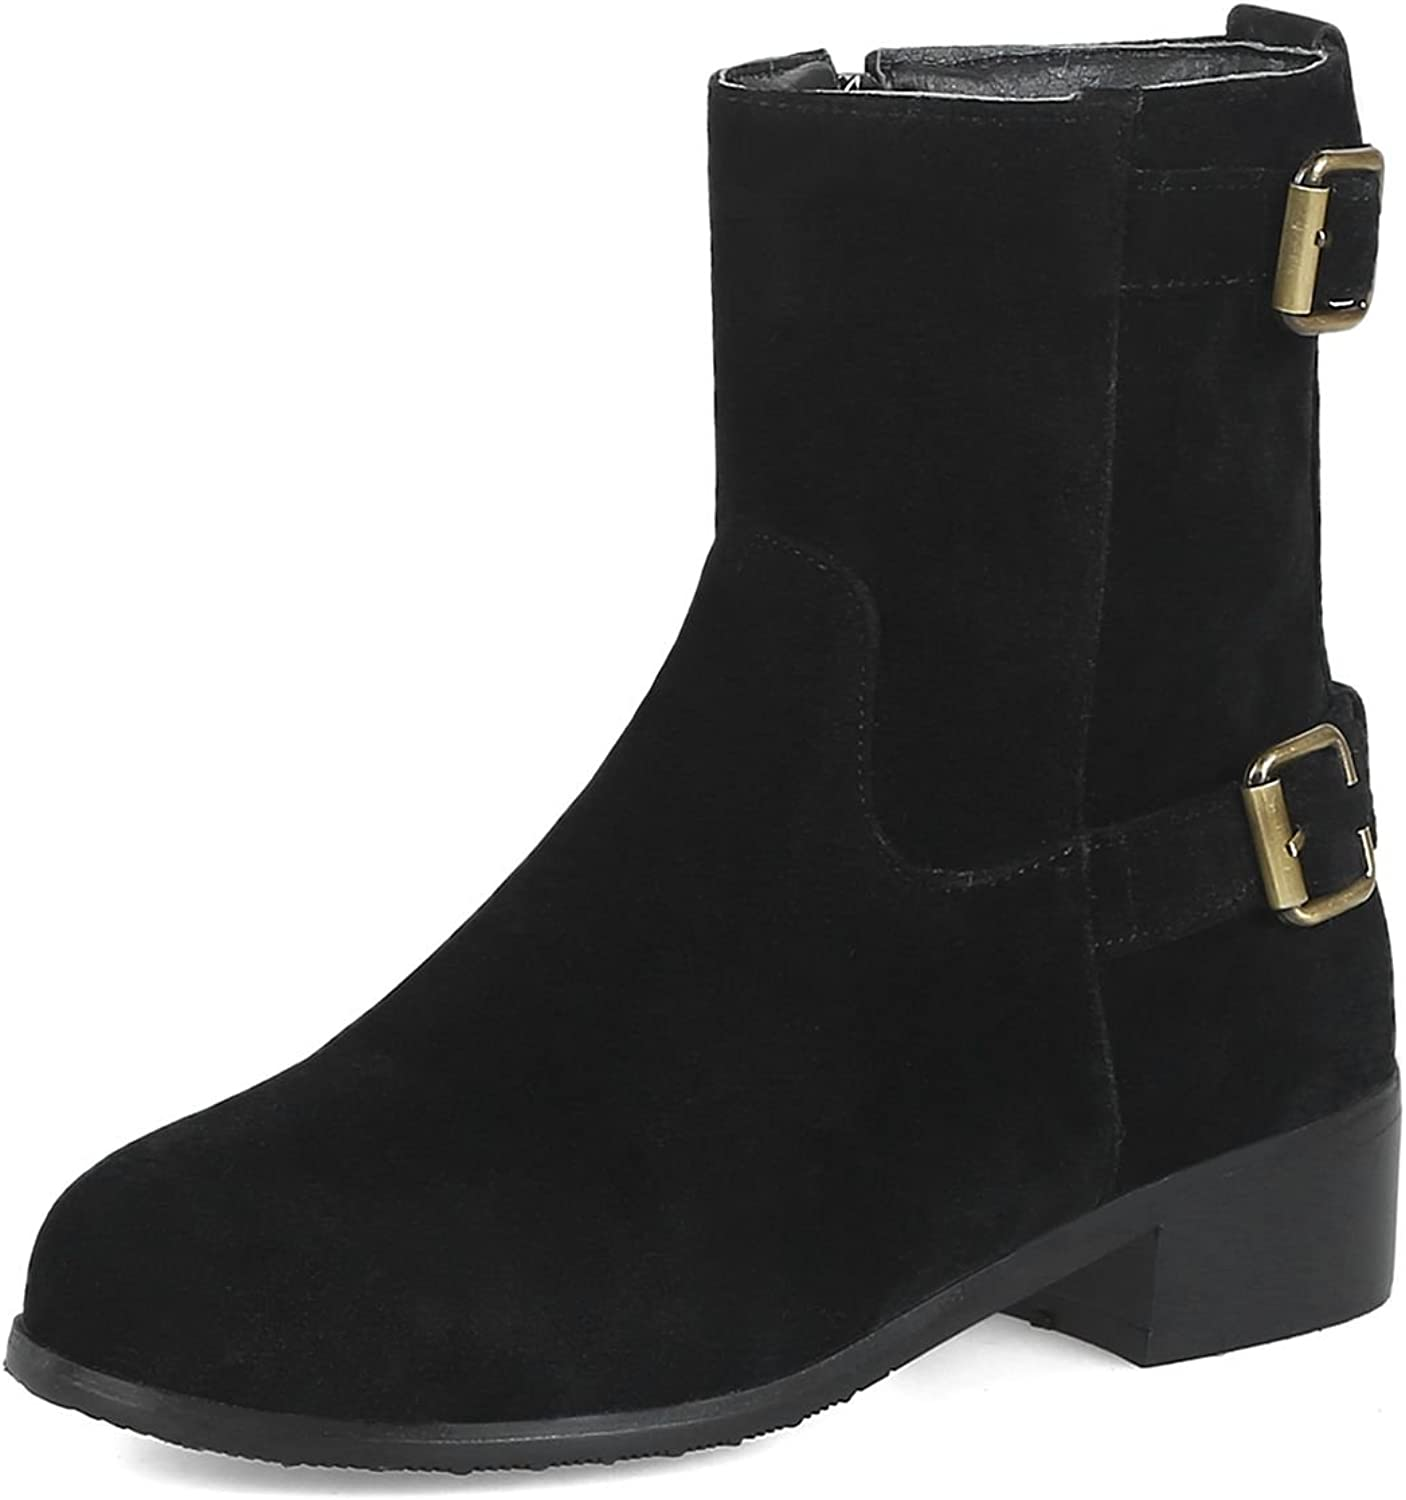 DoraTasia Comfort Artificial Suede Heighten Buckle Round Toe Women's Mid Calf Booties